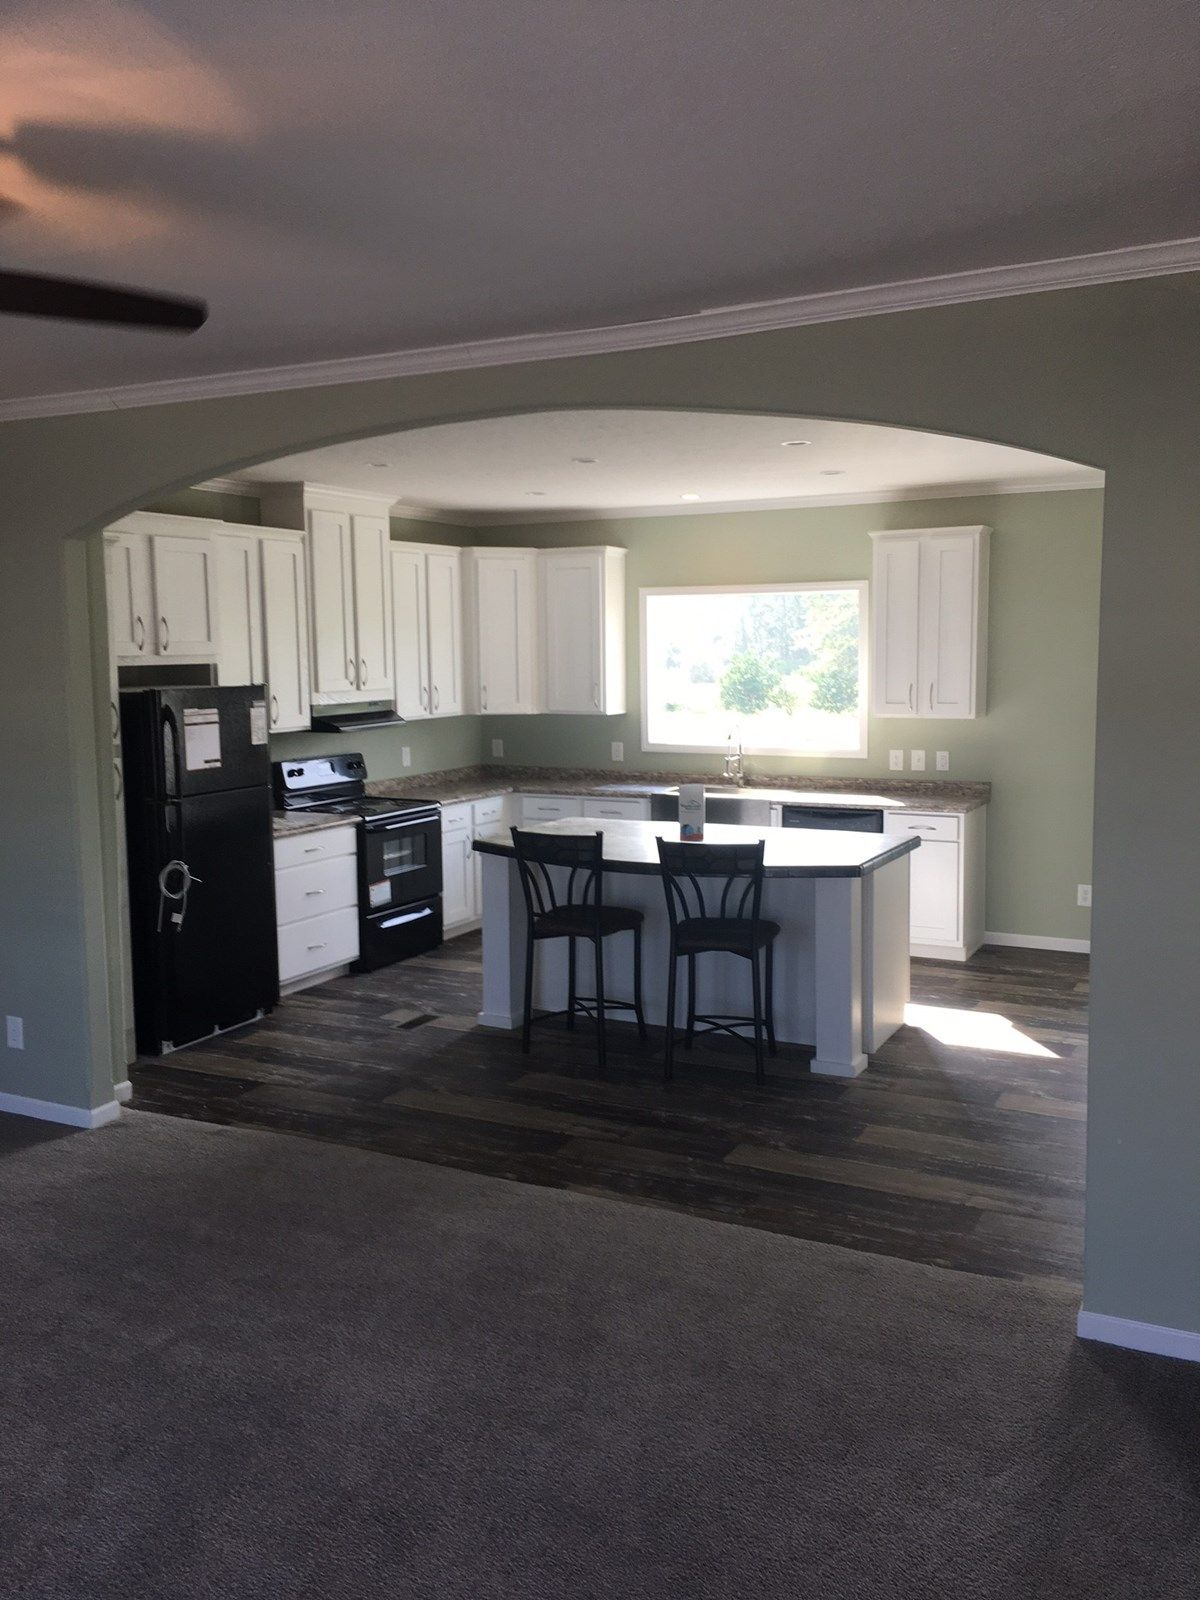 The Piper Homesplus Clayton Homes Manufactured Home Home